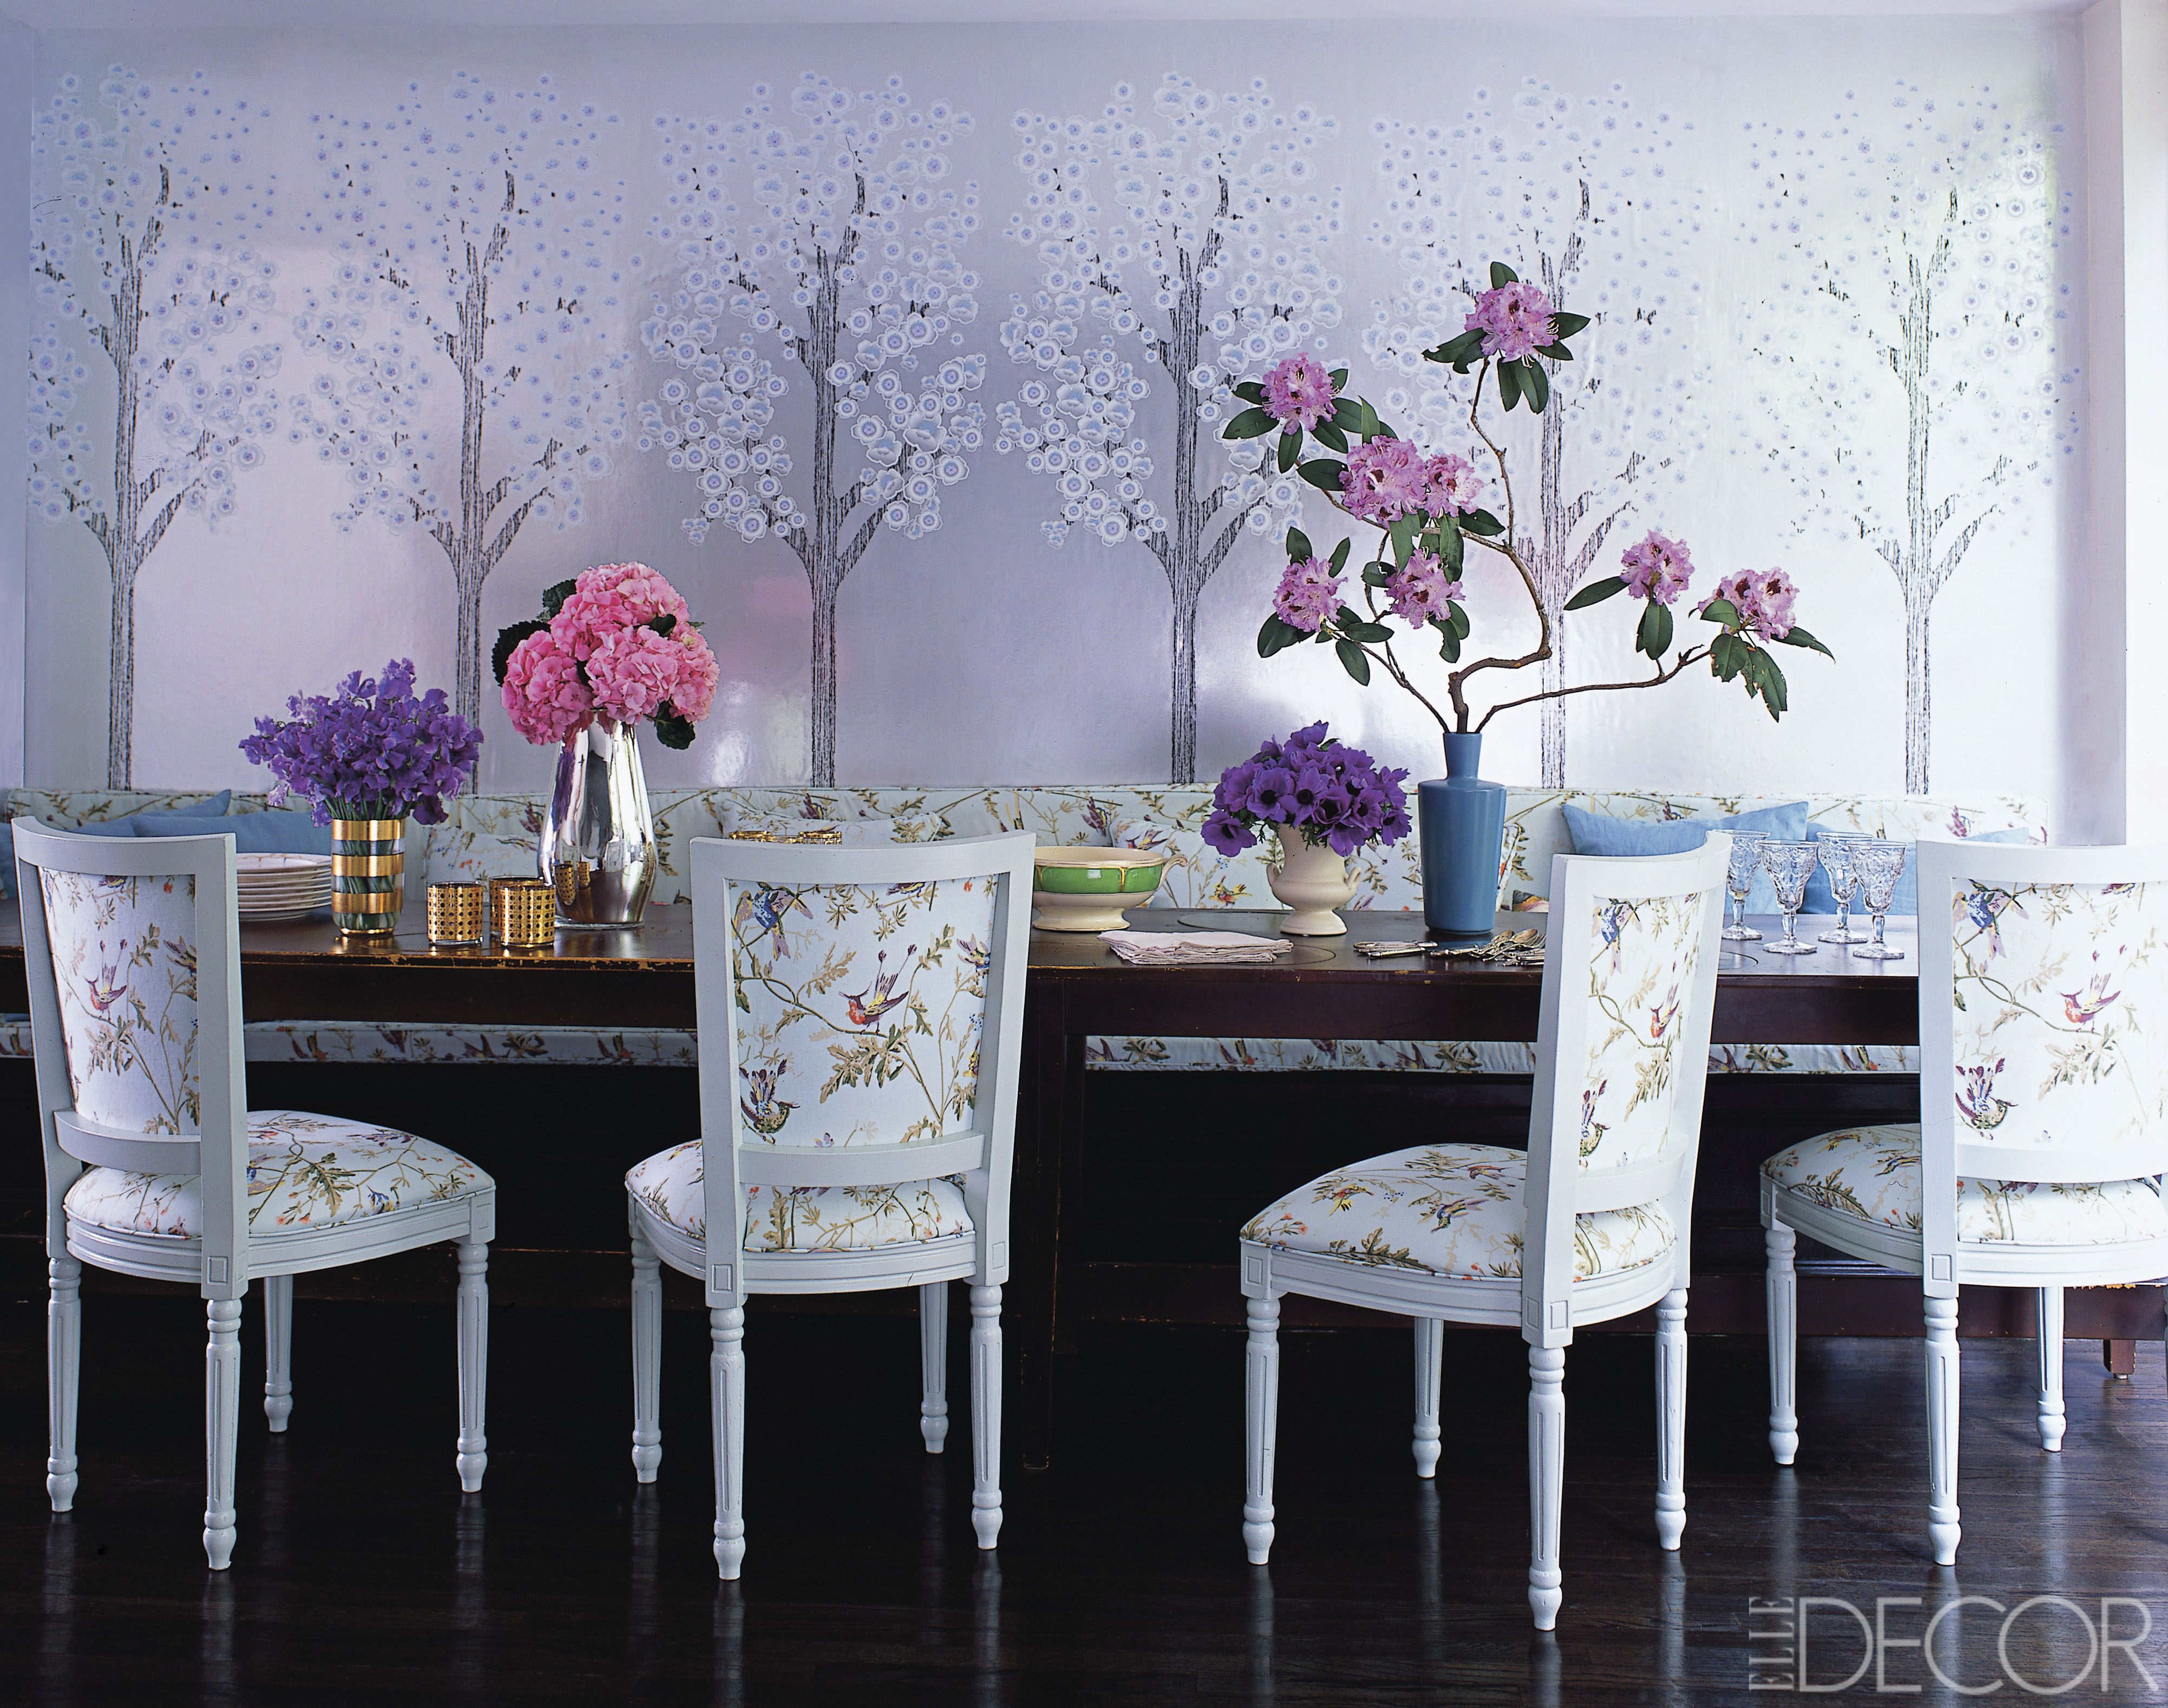 Patterned Wallpapers And Tiles Wall Patterns  Ideas - Wallpaper designs for living room wall